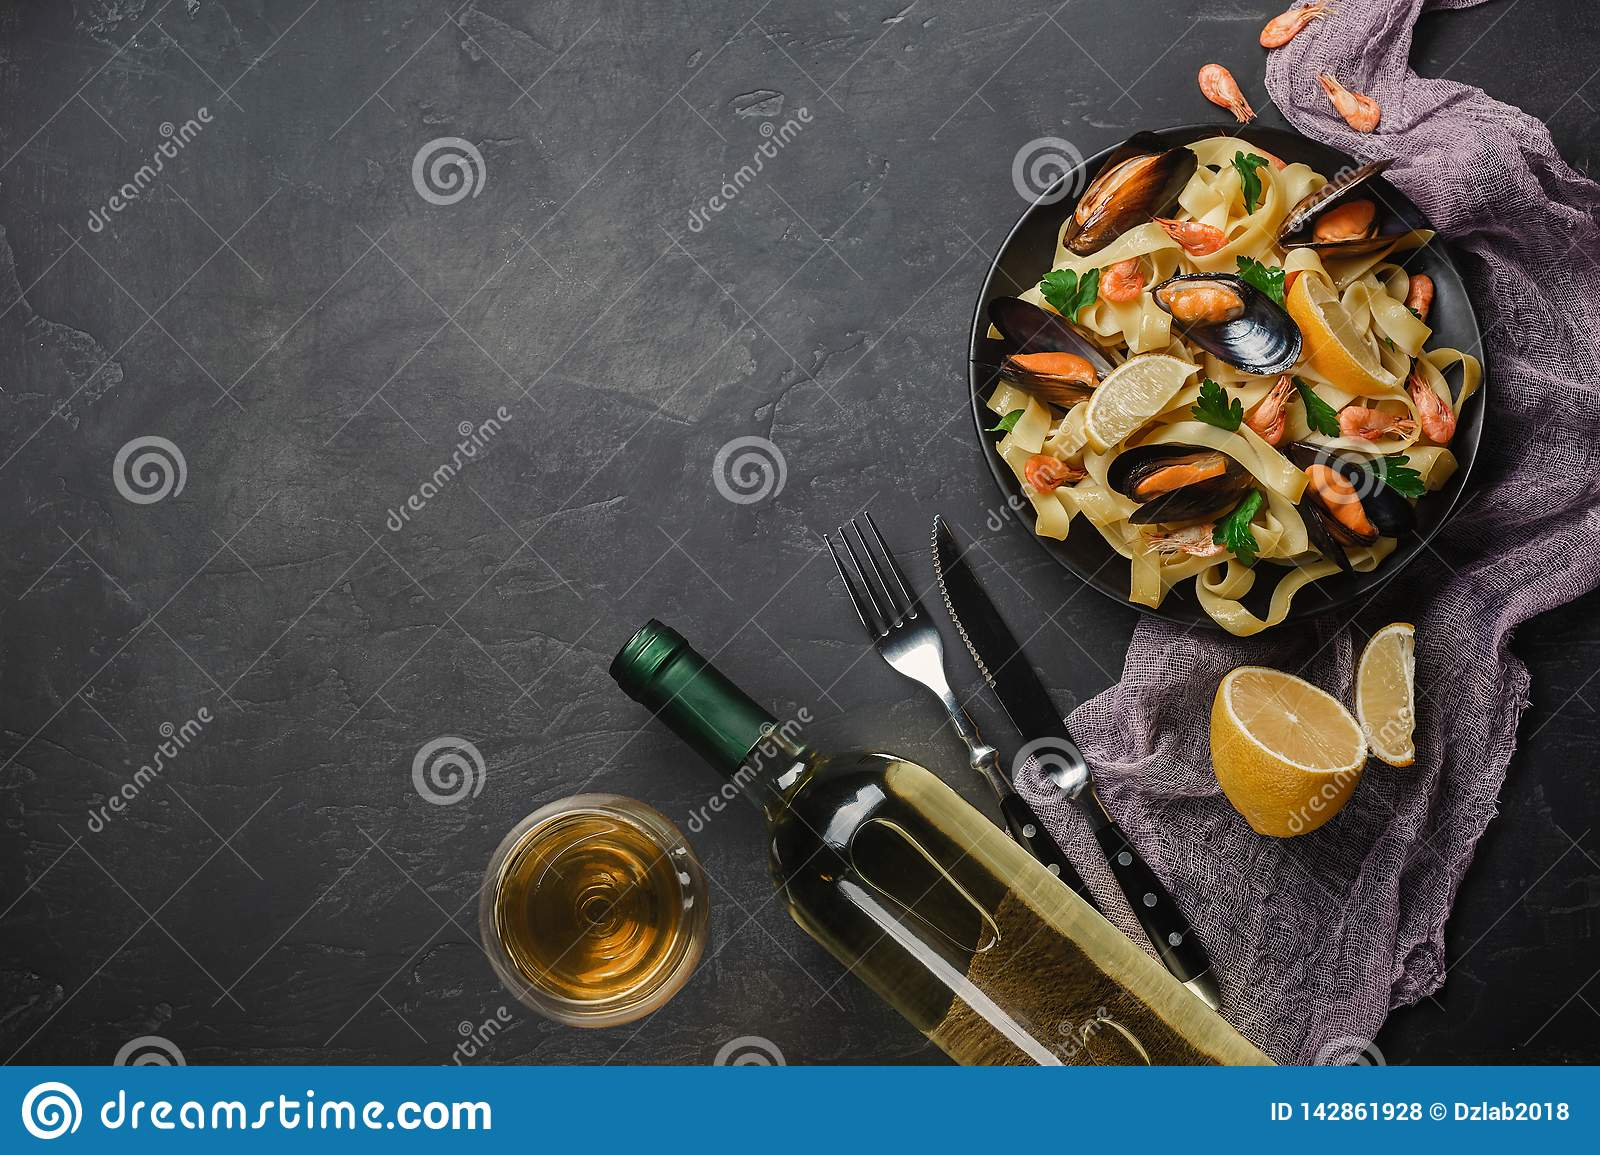 Spaghetti vongole, Italian seafood pasta with clams and mussels, in plate with herbs and glass of white wine on rustic stone